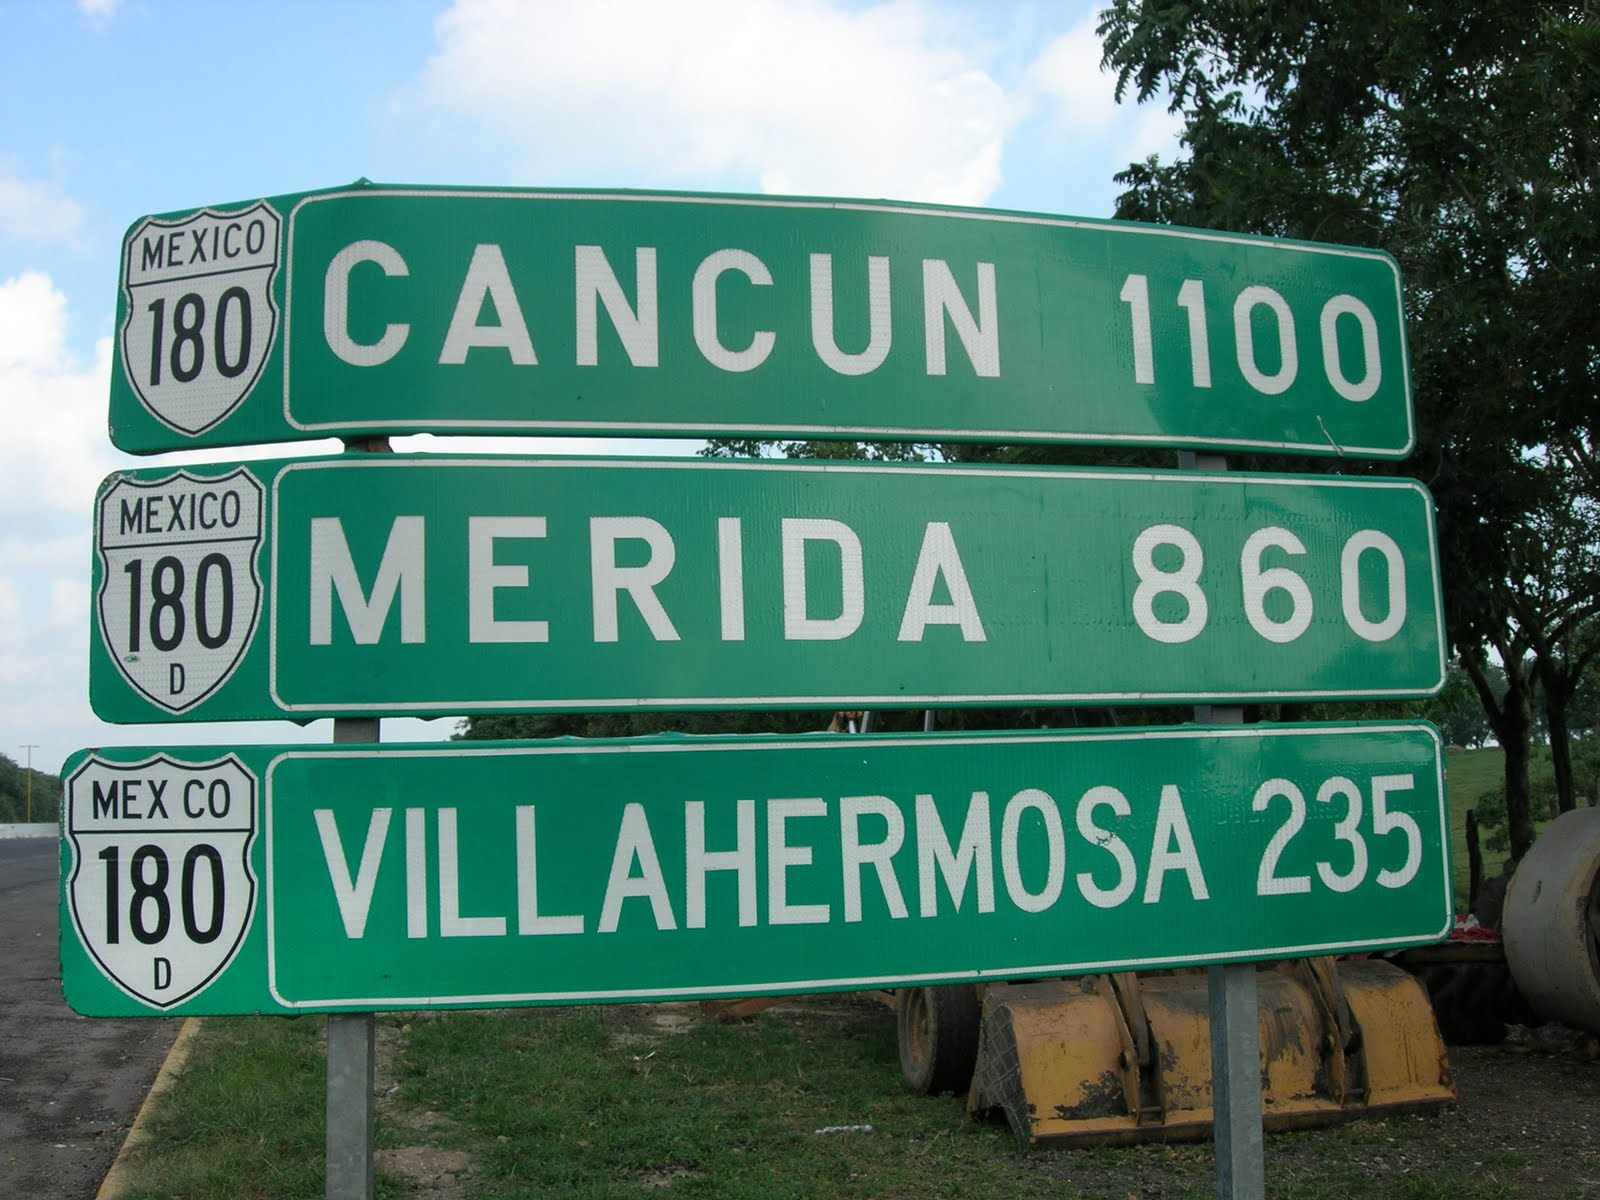 THE NANBEC BLOG: Driving In Mexico: Challenges